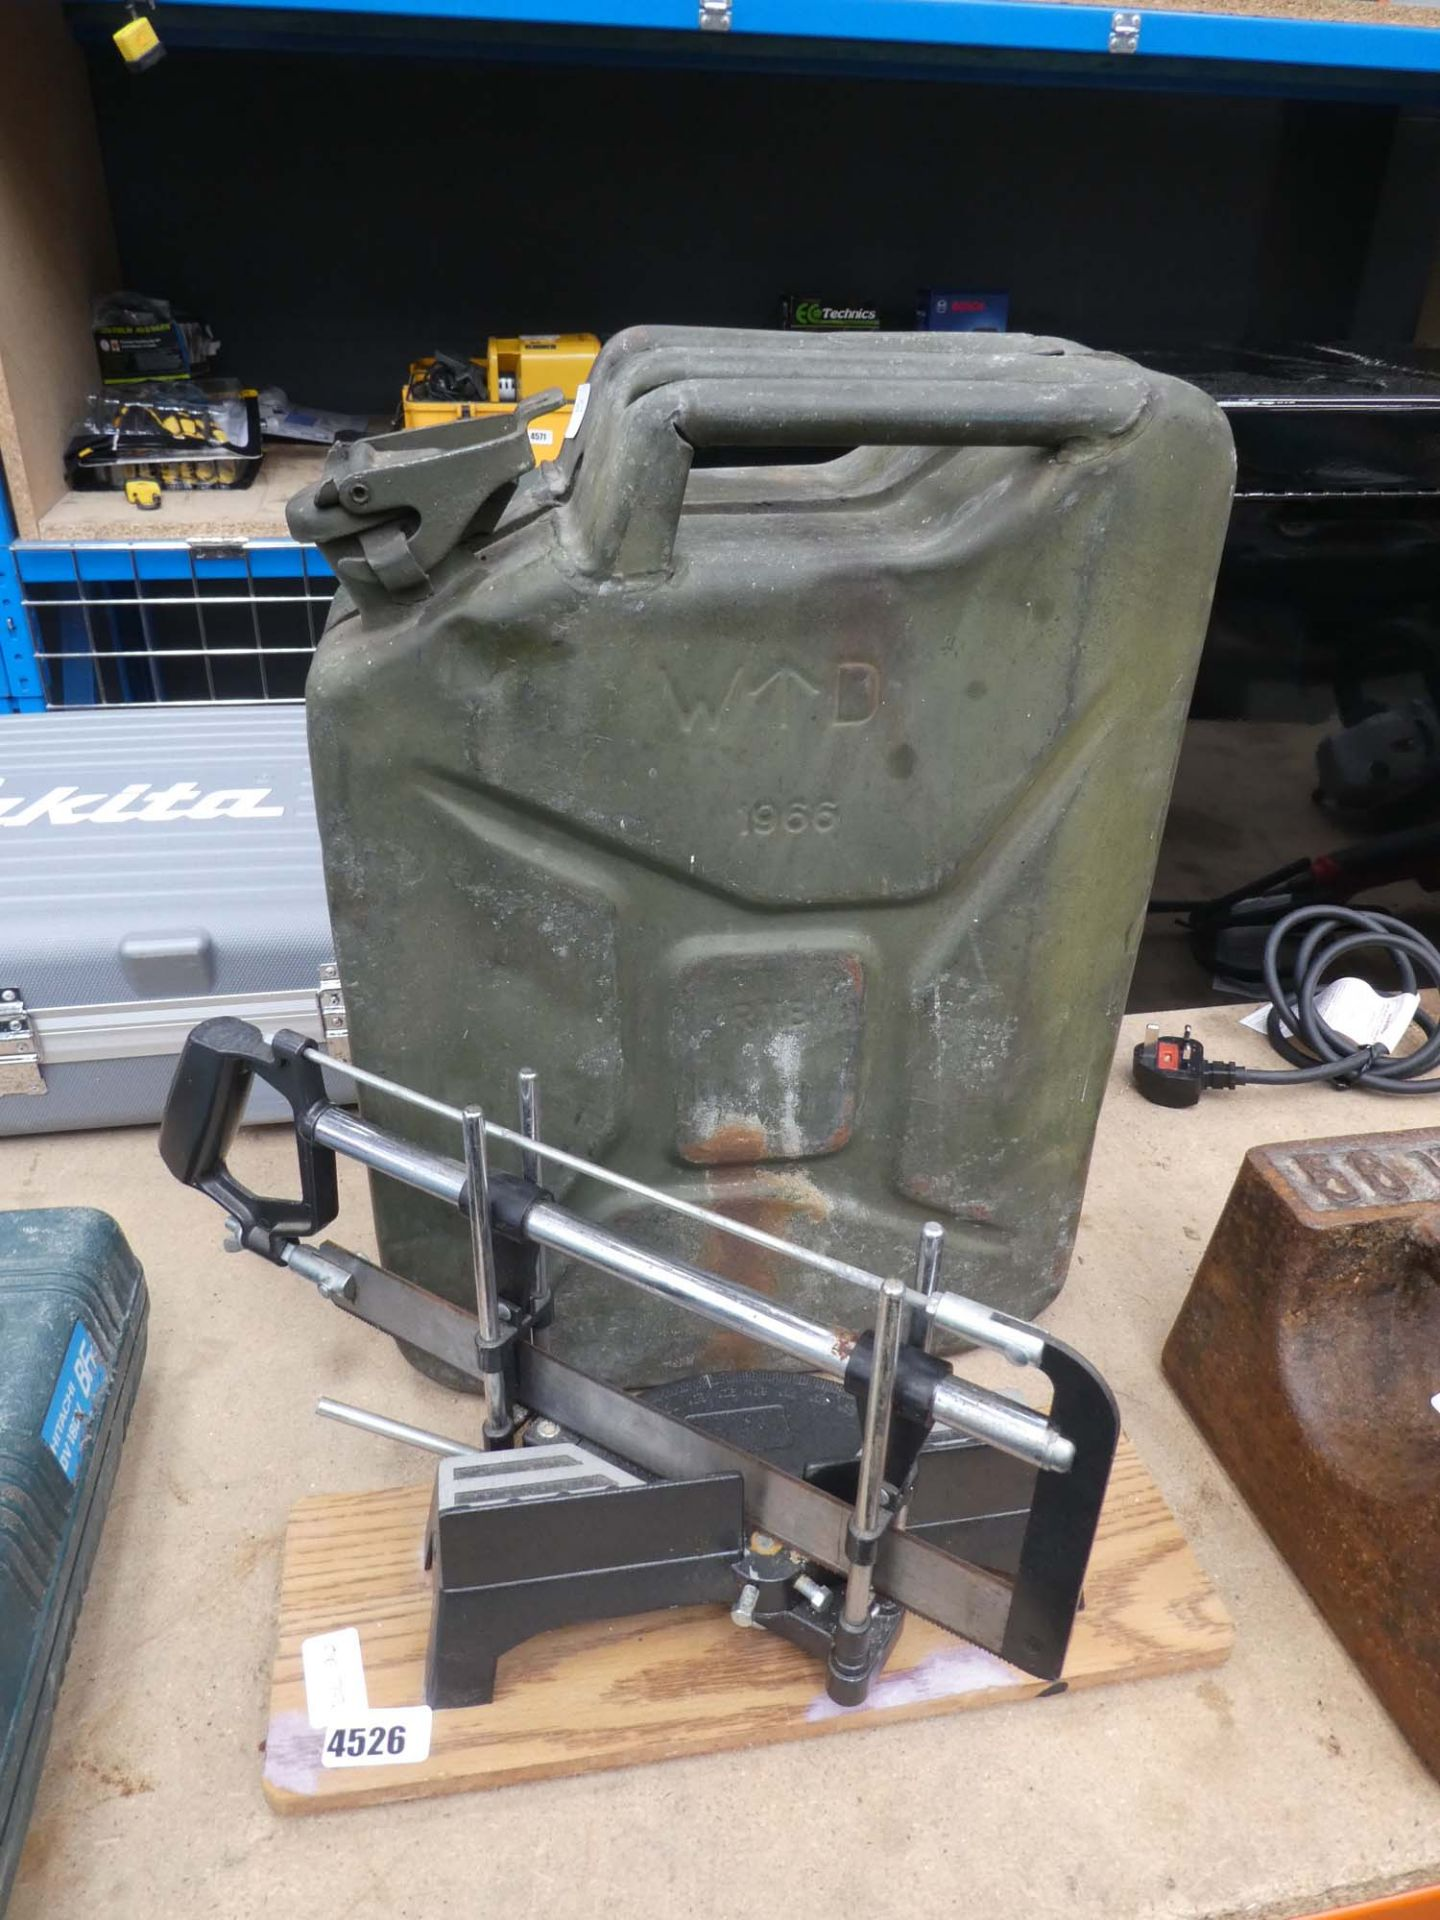 Jerry can and mitre saw